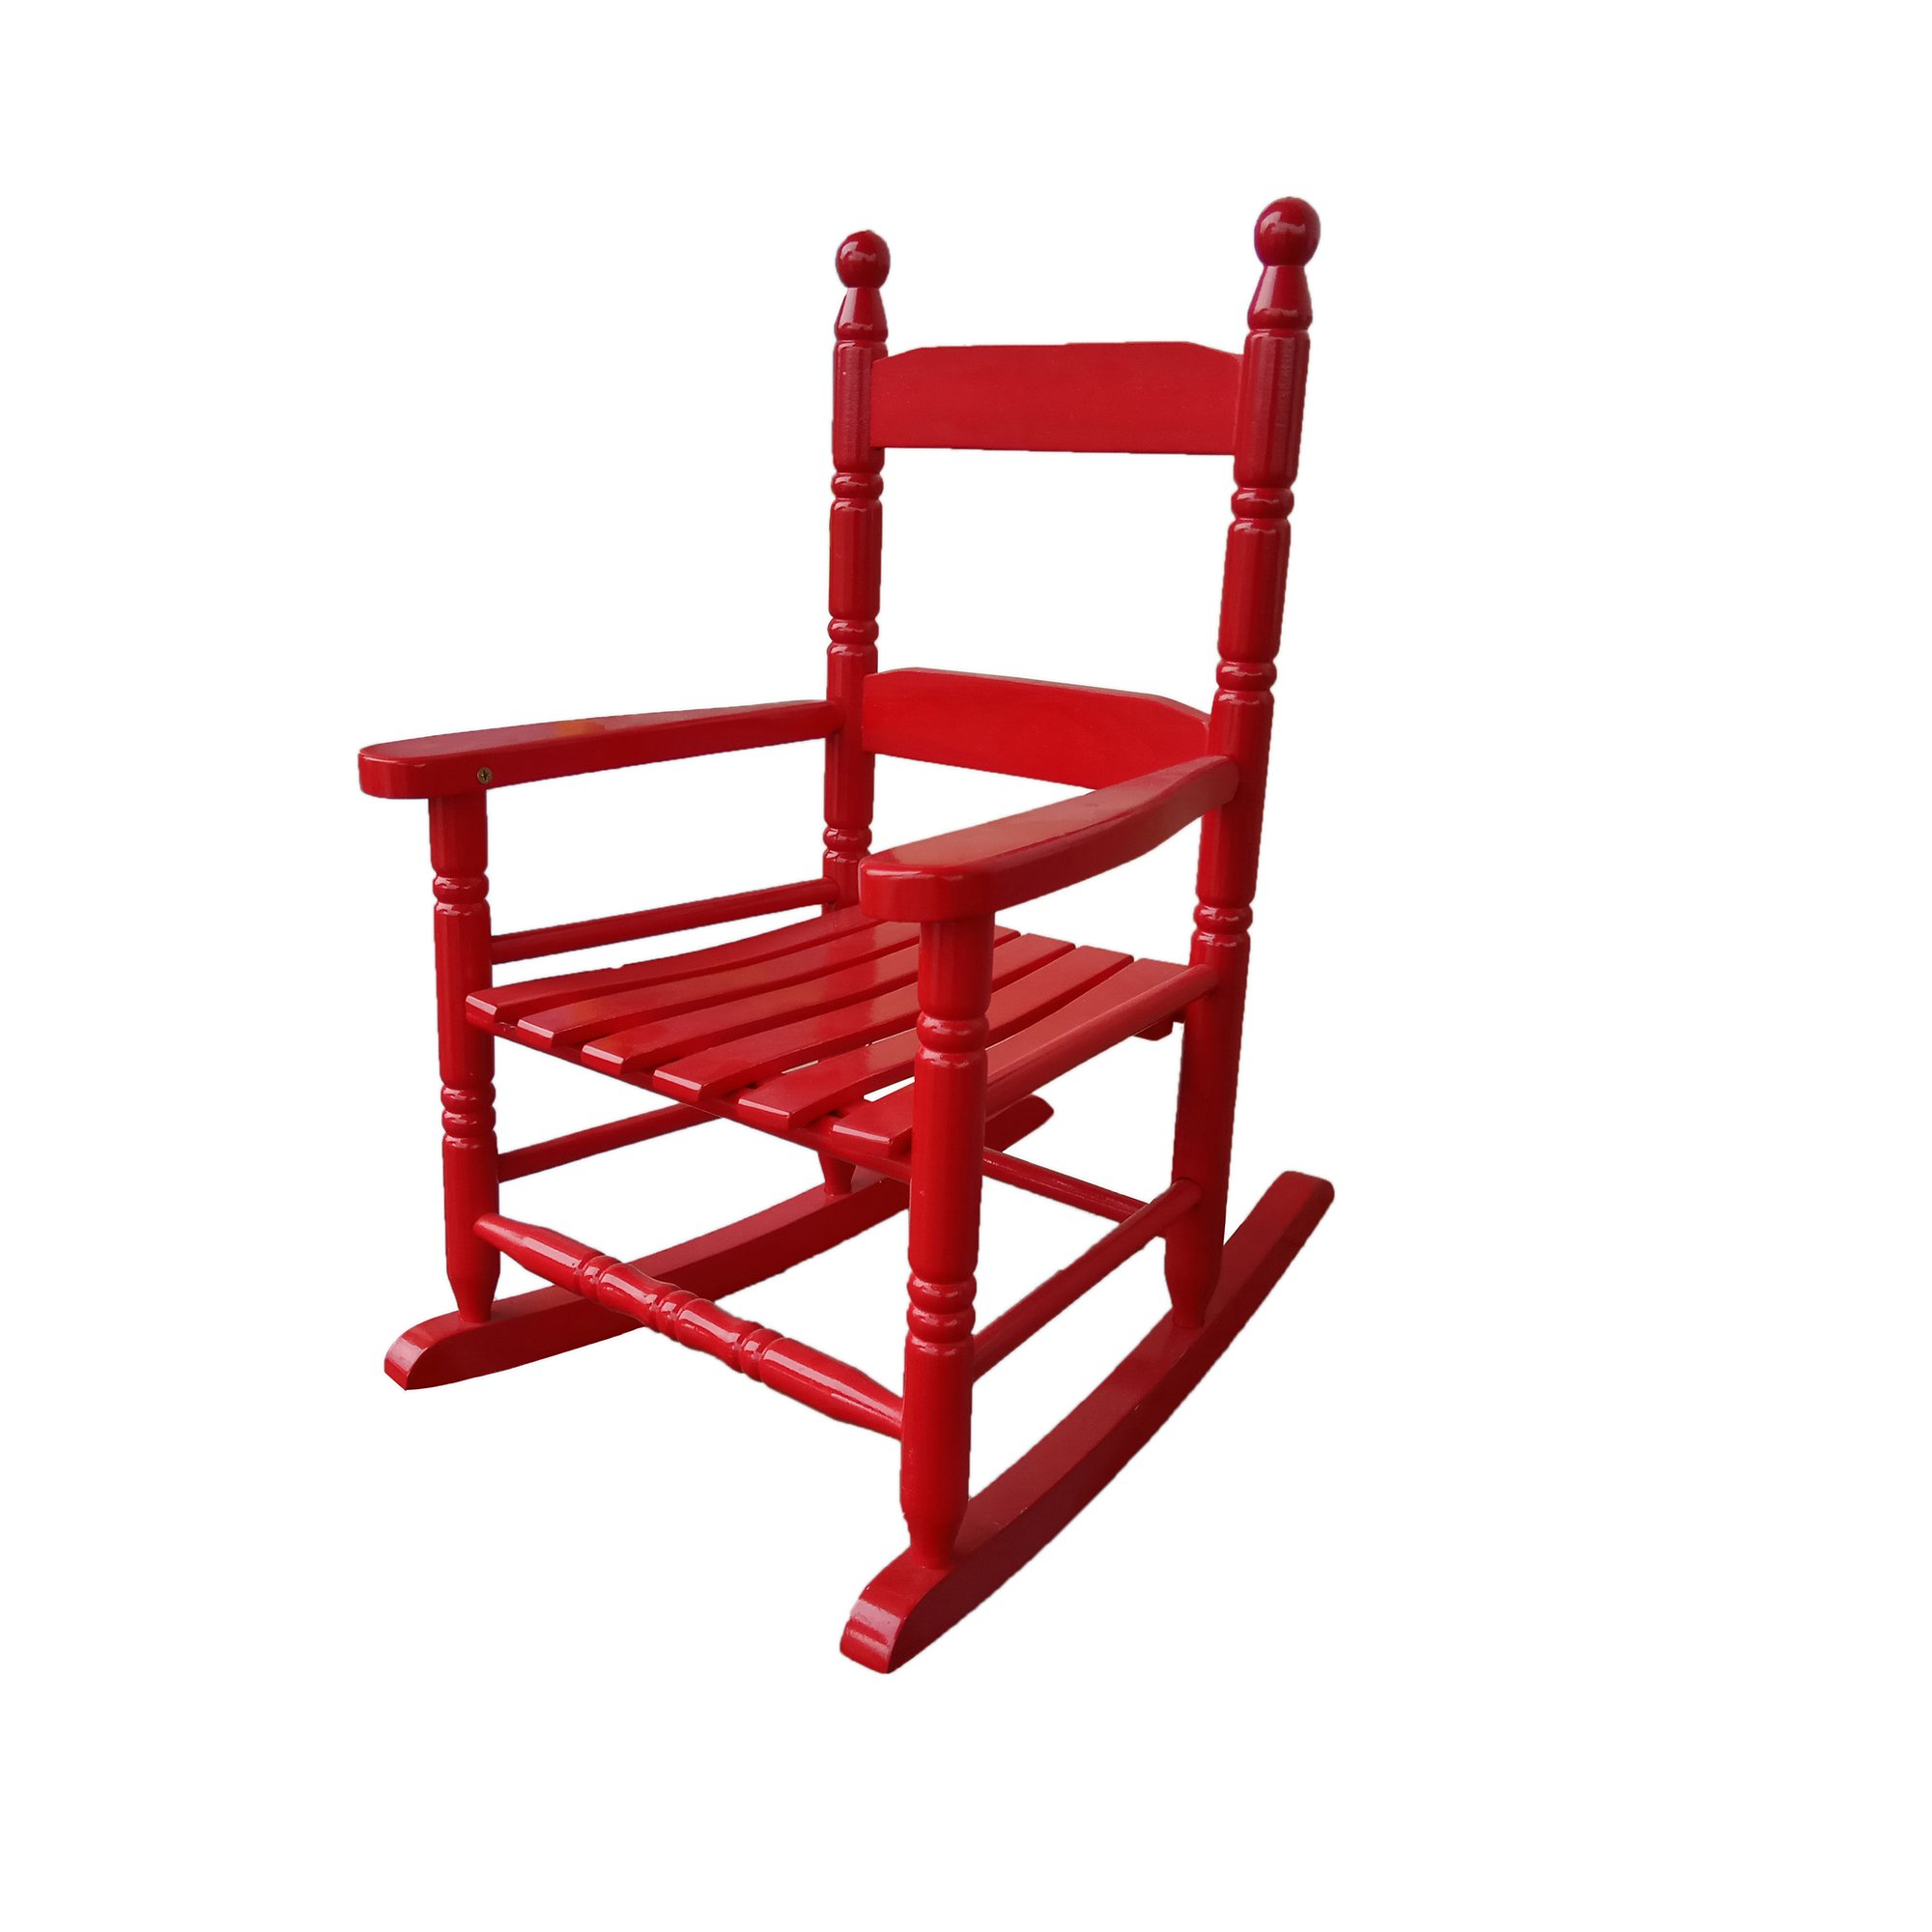 rockingrocker - K10RD Red Child's Rocking Chair/Porch Rocker - Indoor or Outdoor - Suitable for 1 to 4 Years Old by Rockingrocker